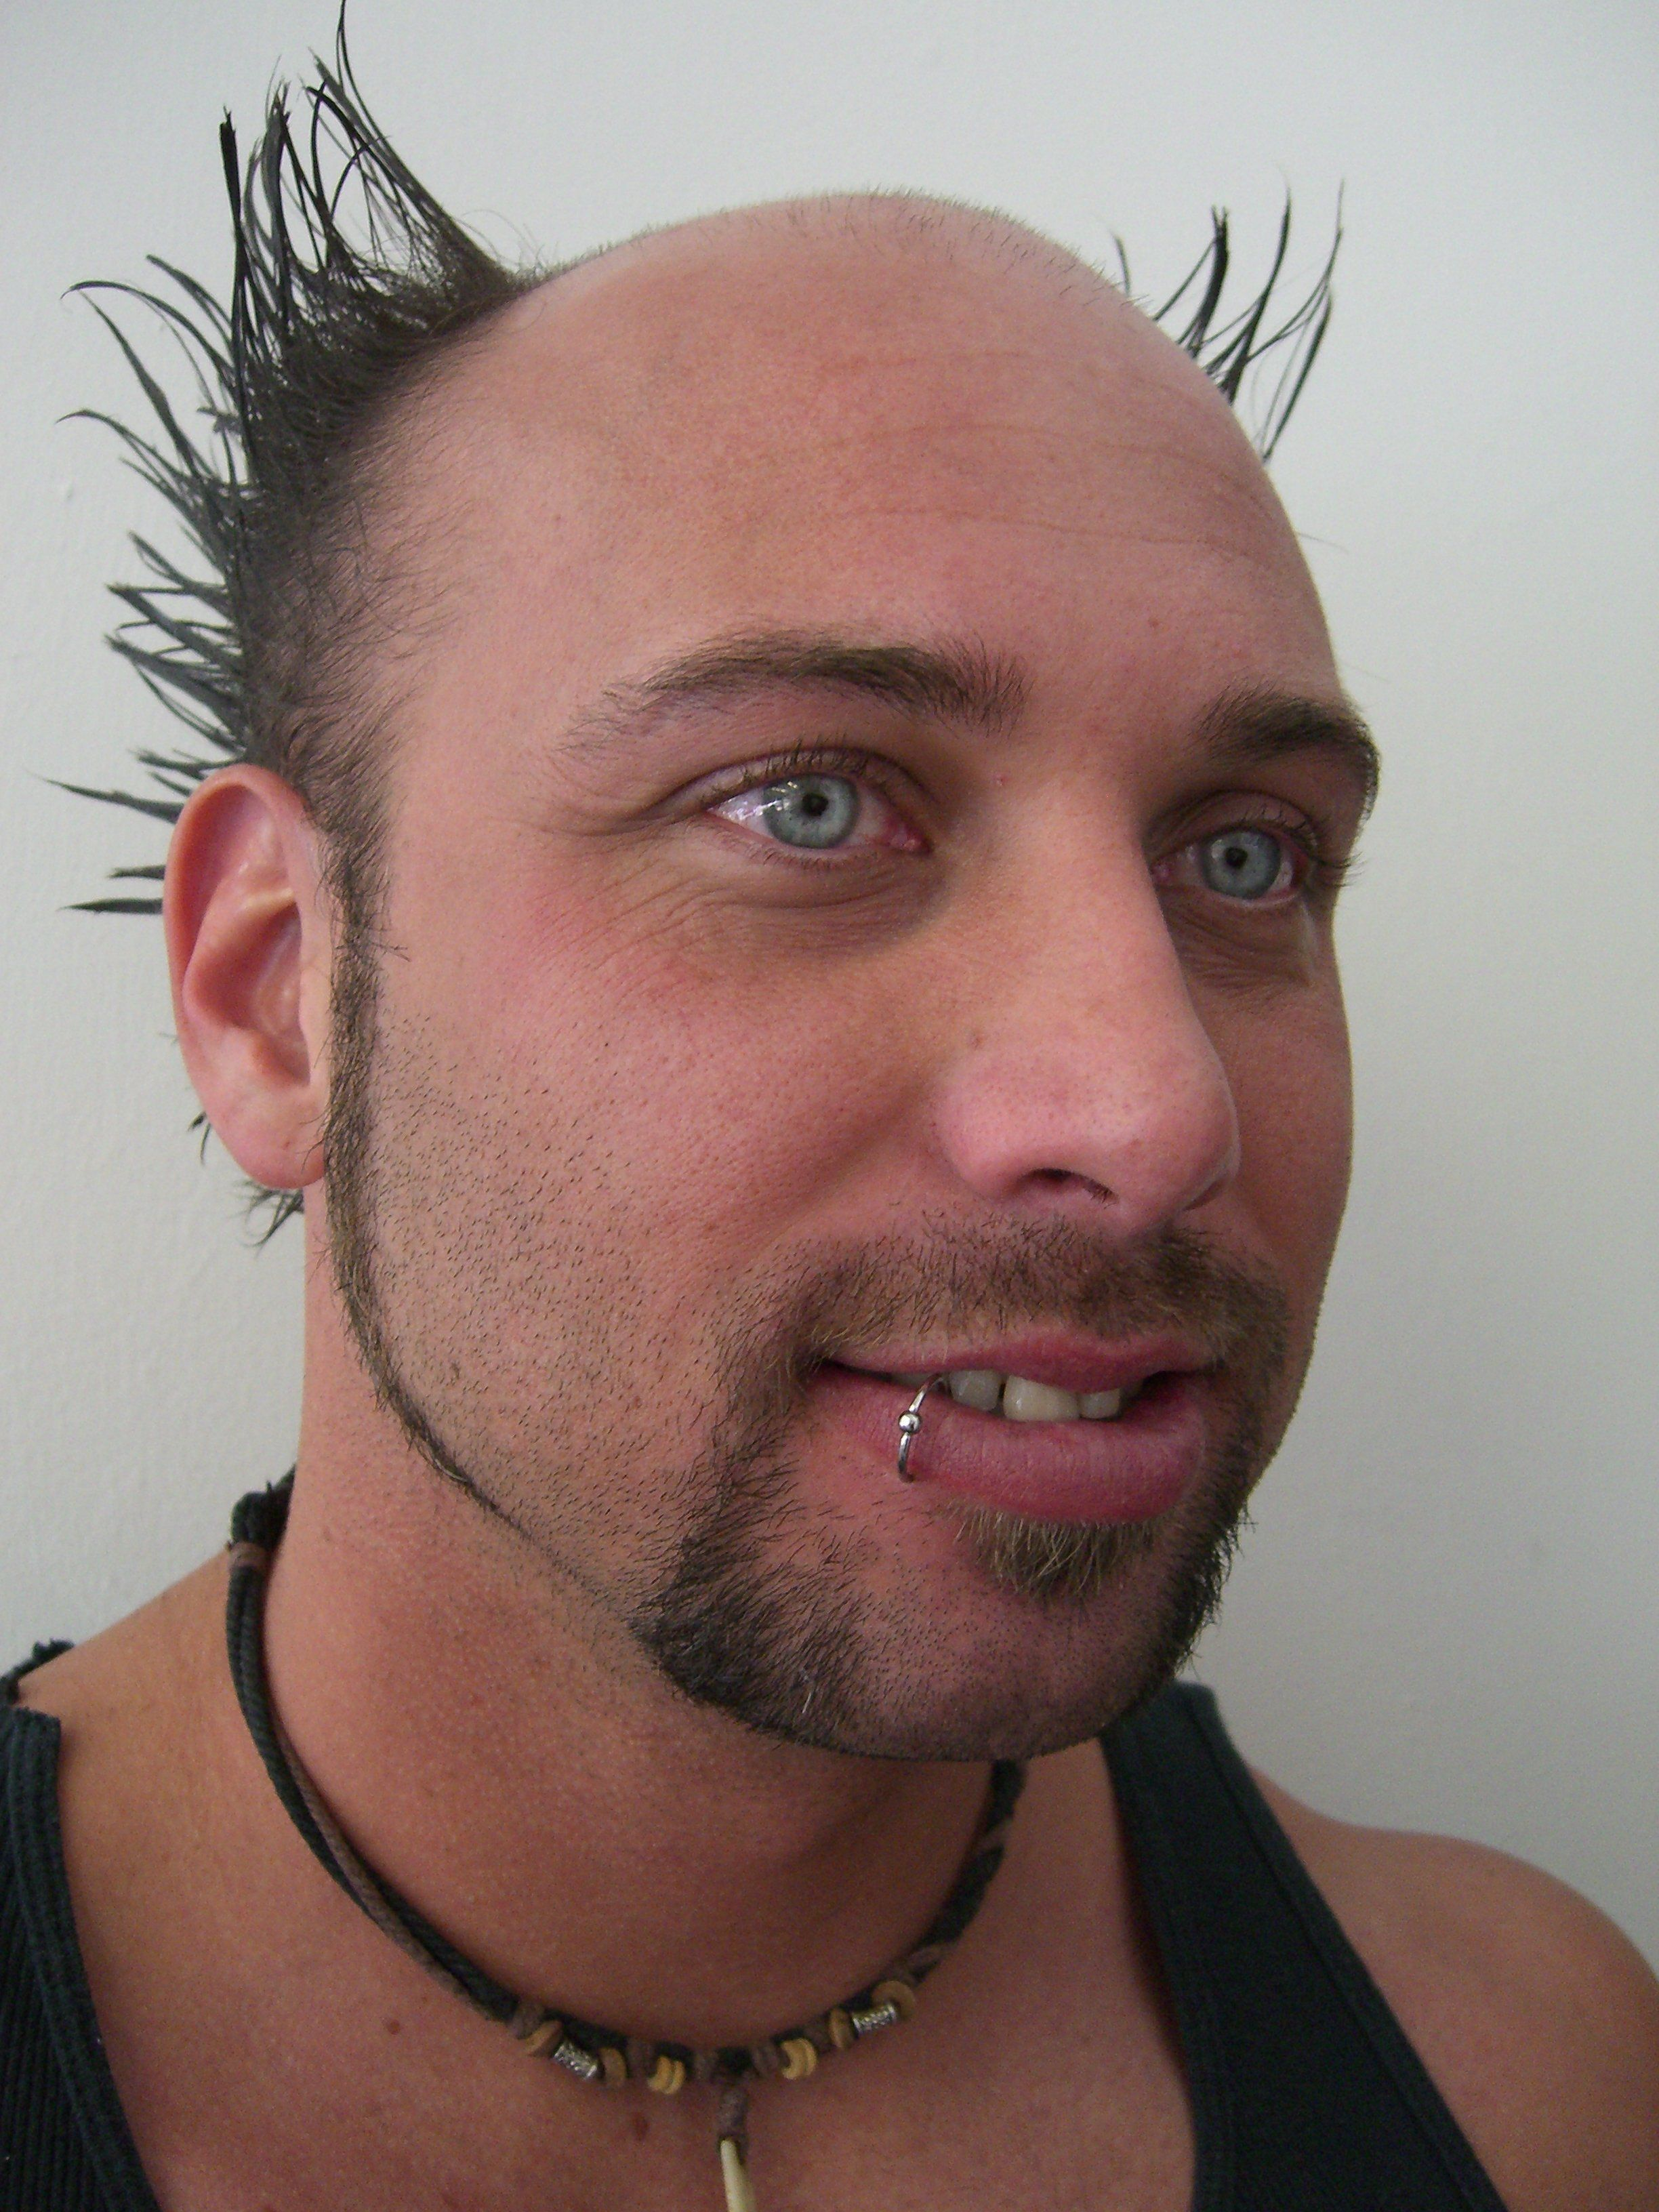 Male facial piercings